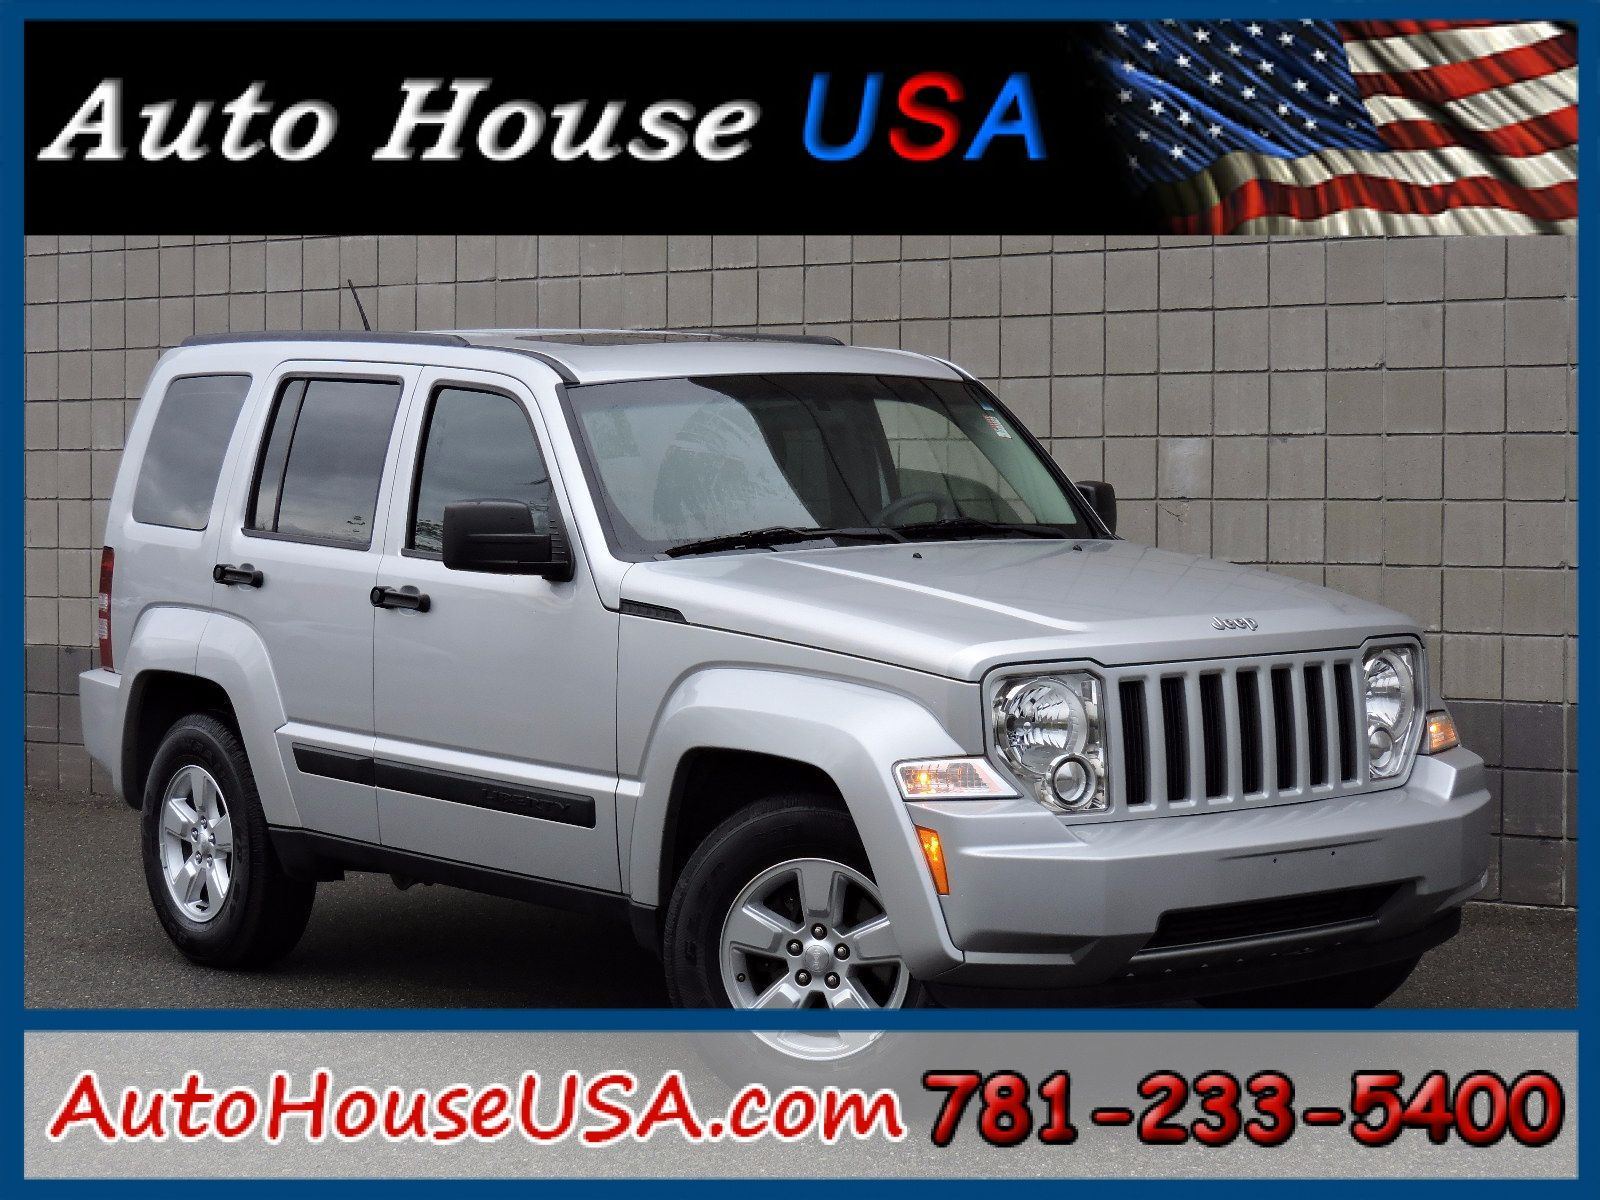 2010 Jeep Liberty Sport All Wheel Drive used forsale